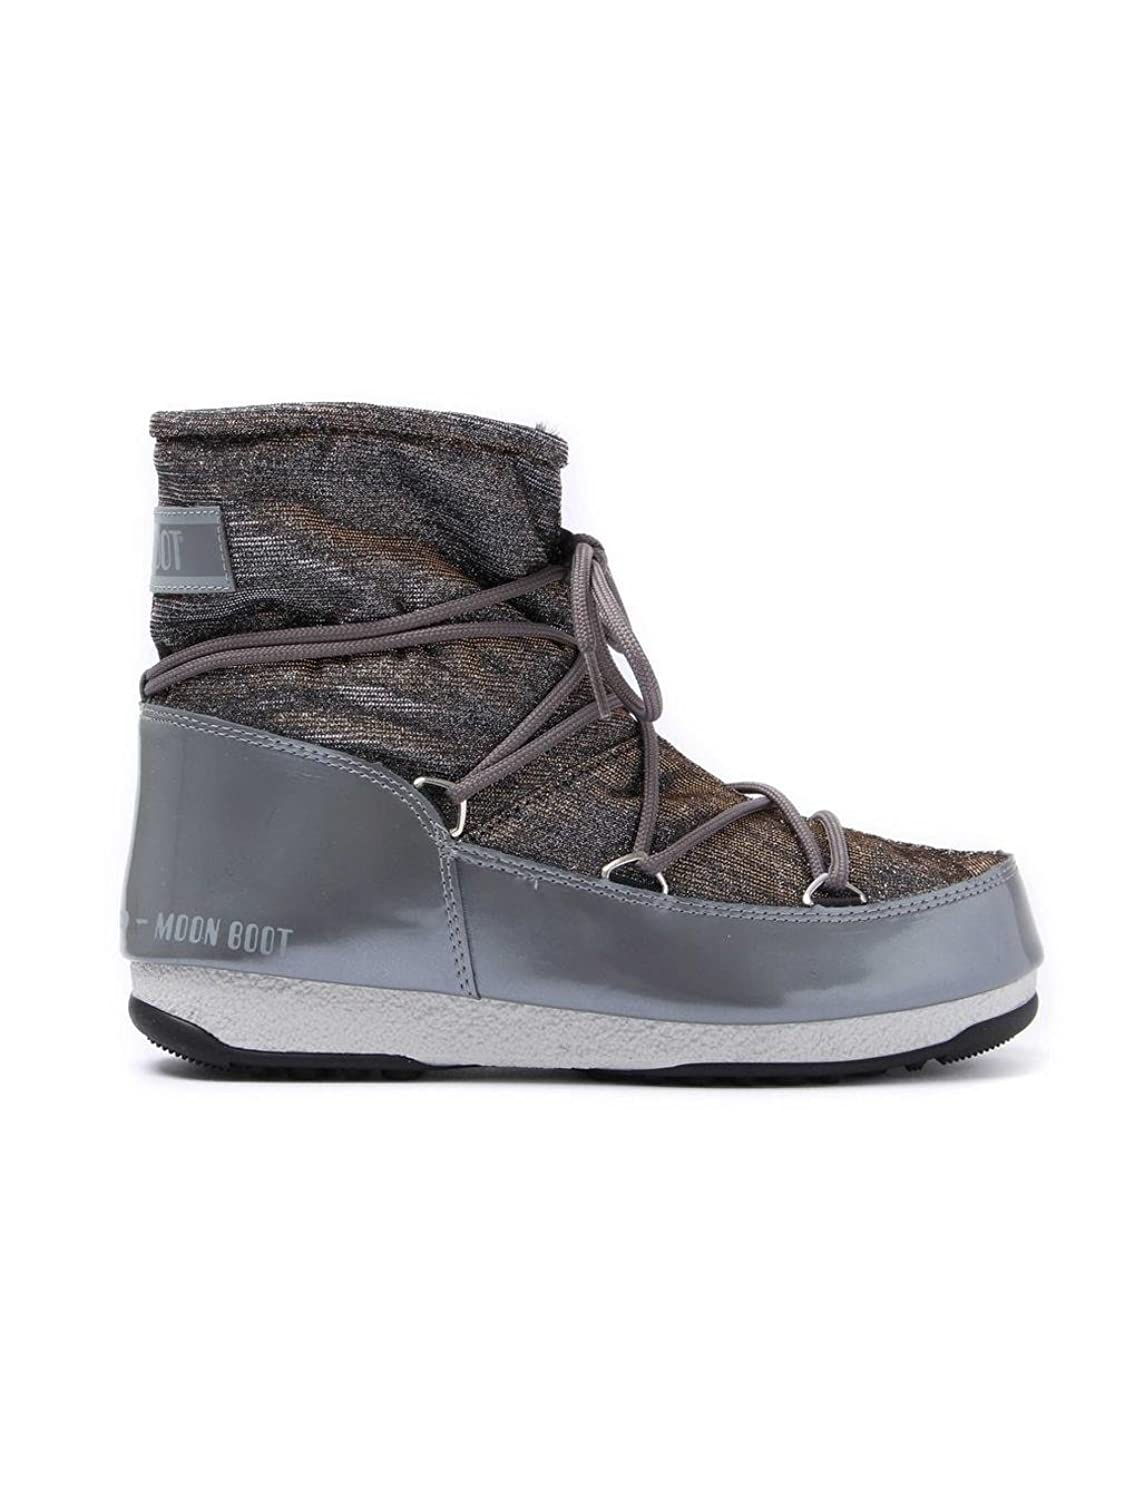 Marques Chaussure femme Moon Boot femme Low Lurex Greysilver